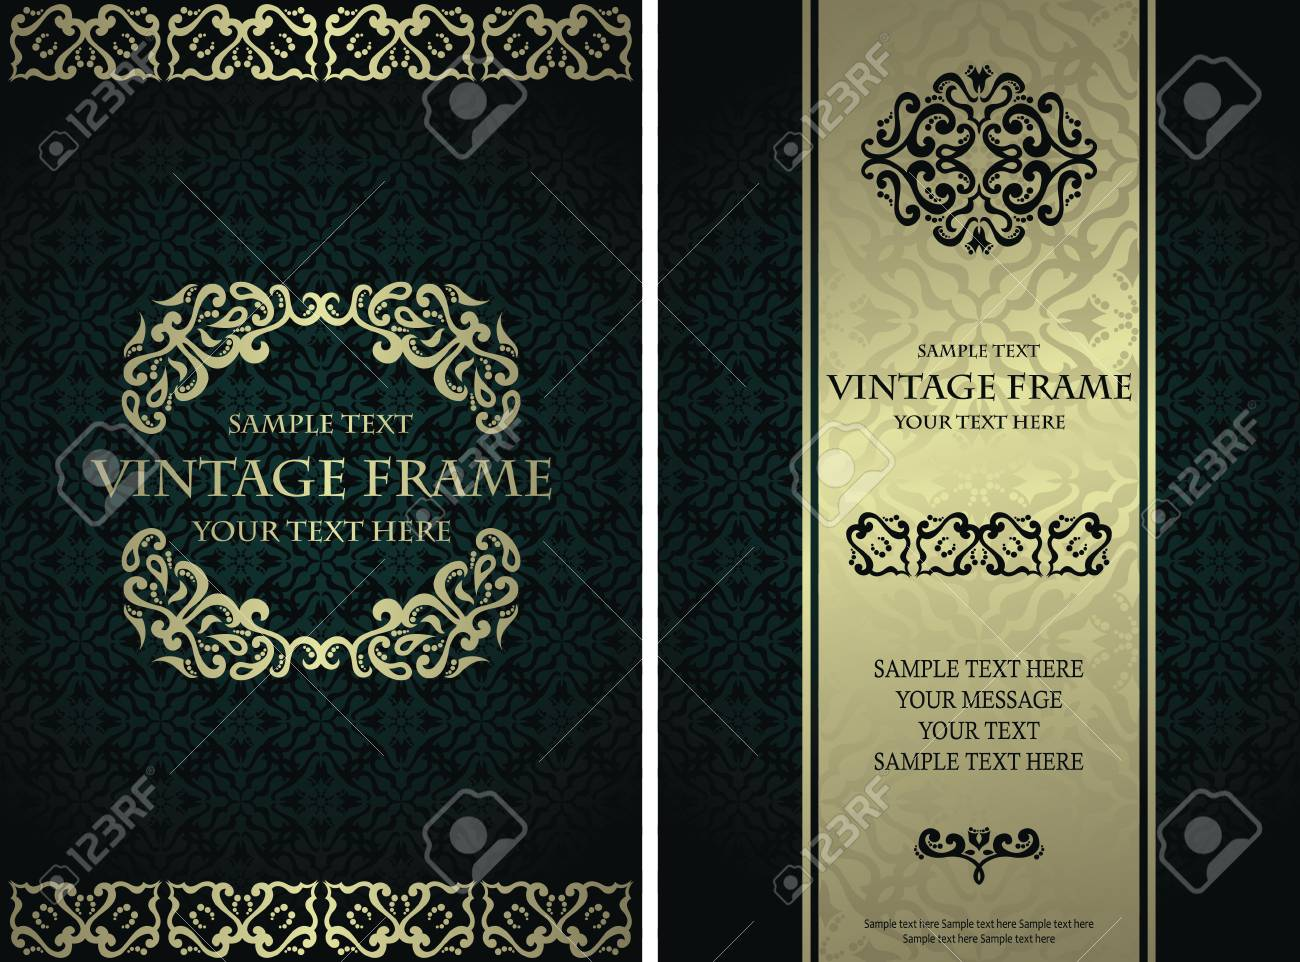 Vintage Design For Invitation Card Or Certificate Set Of Templates Royalty Free Cliparts Vectors And Stock Illustration Image 85353994